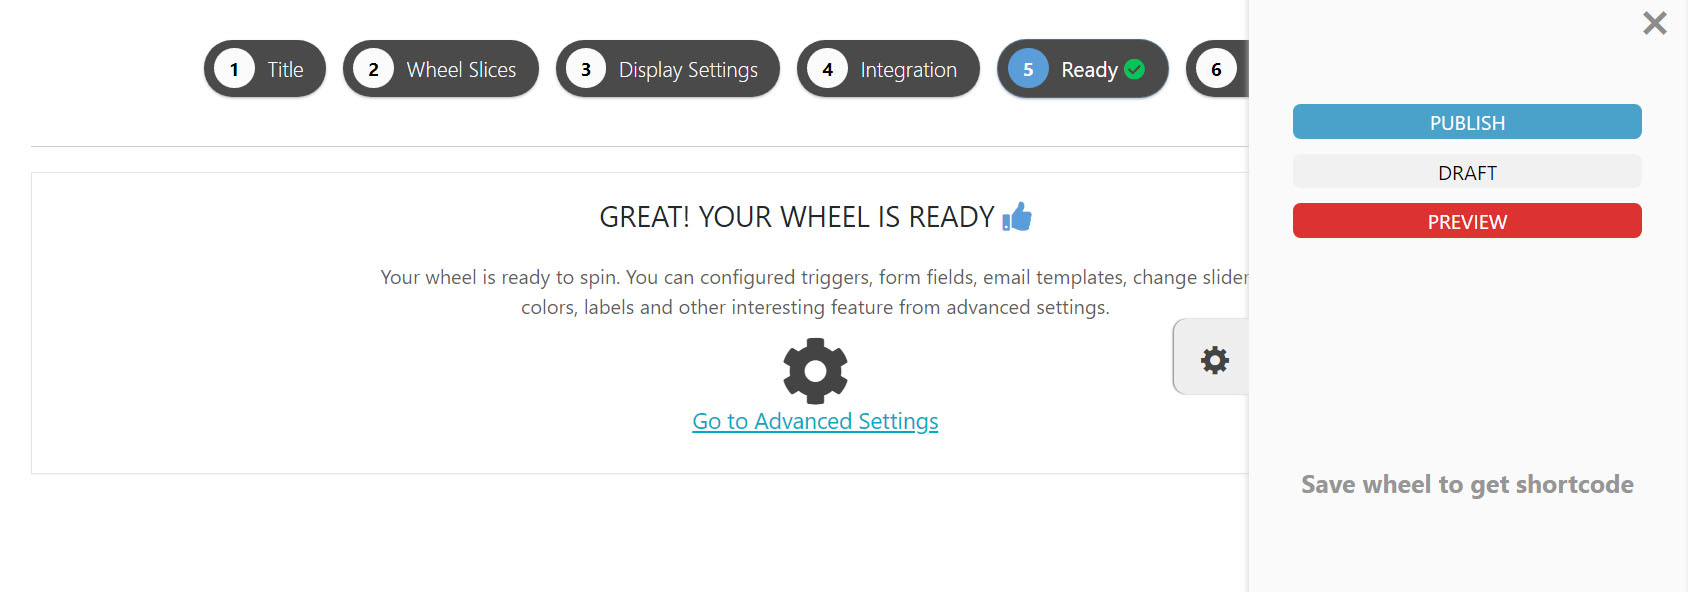 OptinSpin - Fortune Wheel Integrated with WordPress, WooCommerce and Easy Digital Downloads Coupons - 9